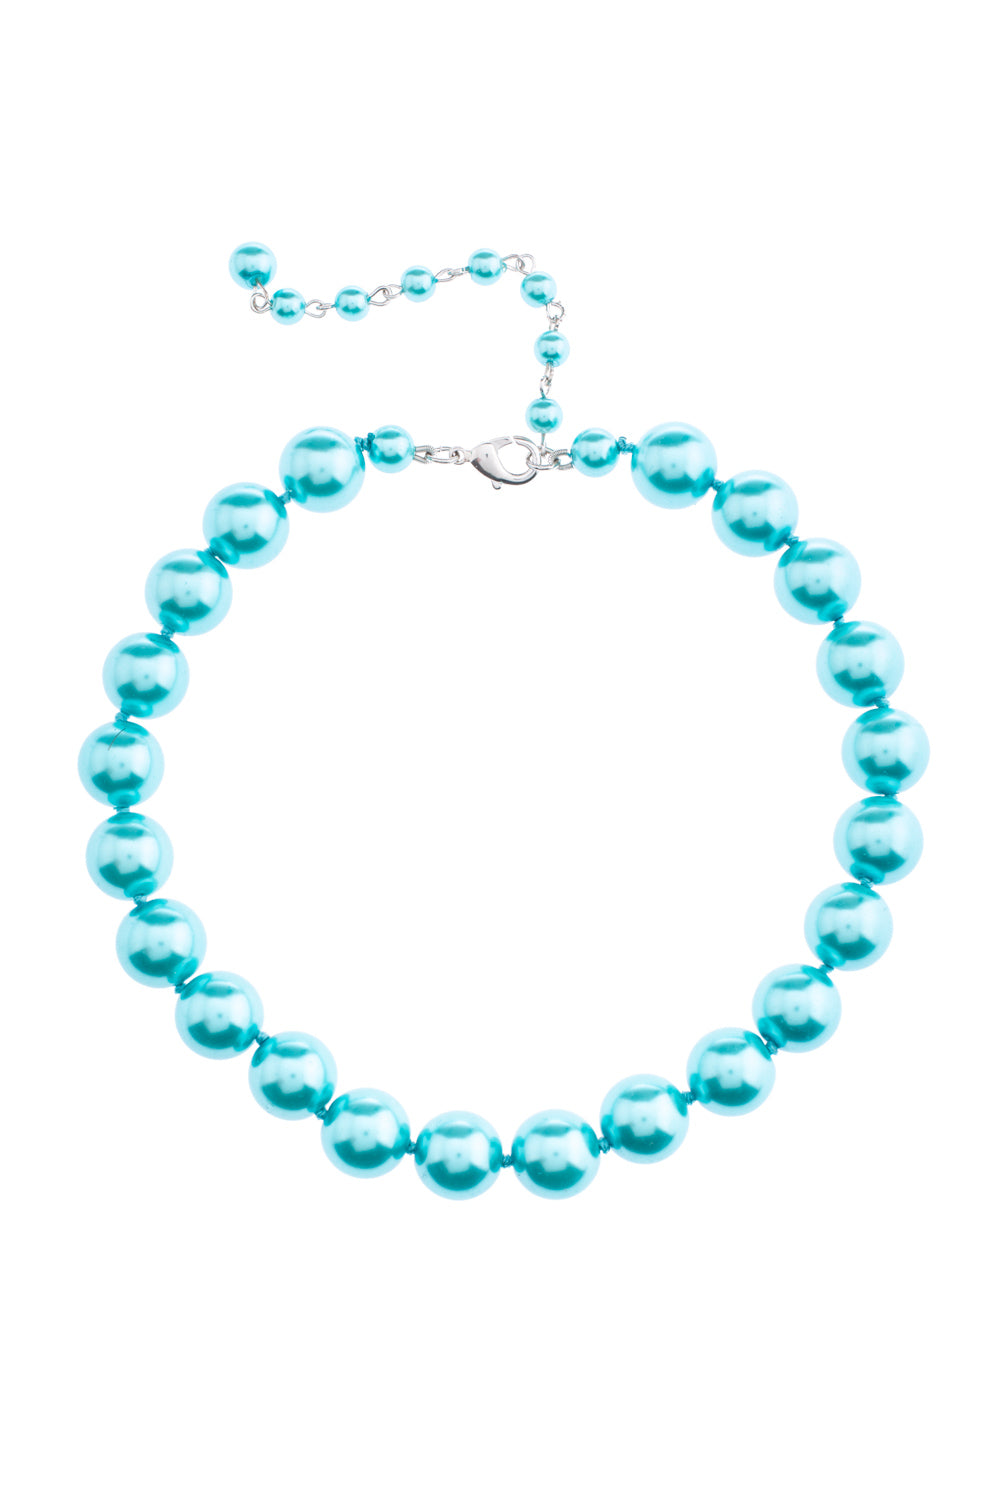 Type 1 Tempting Teal Necklace